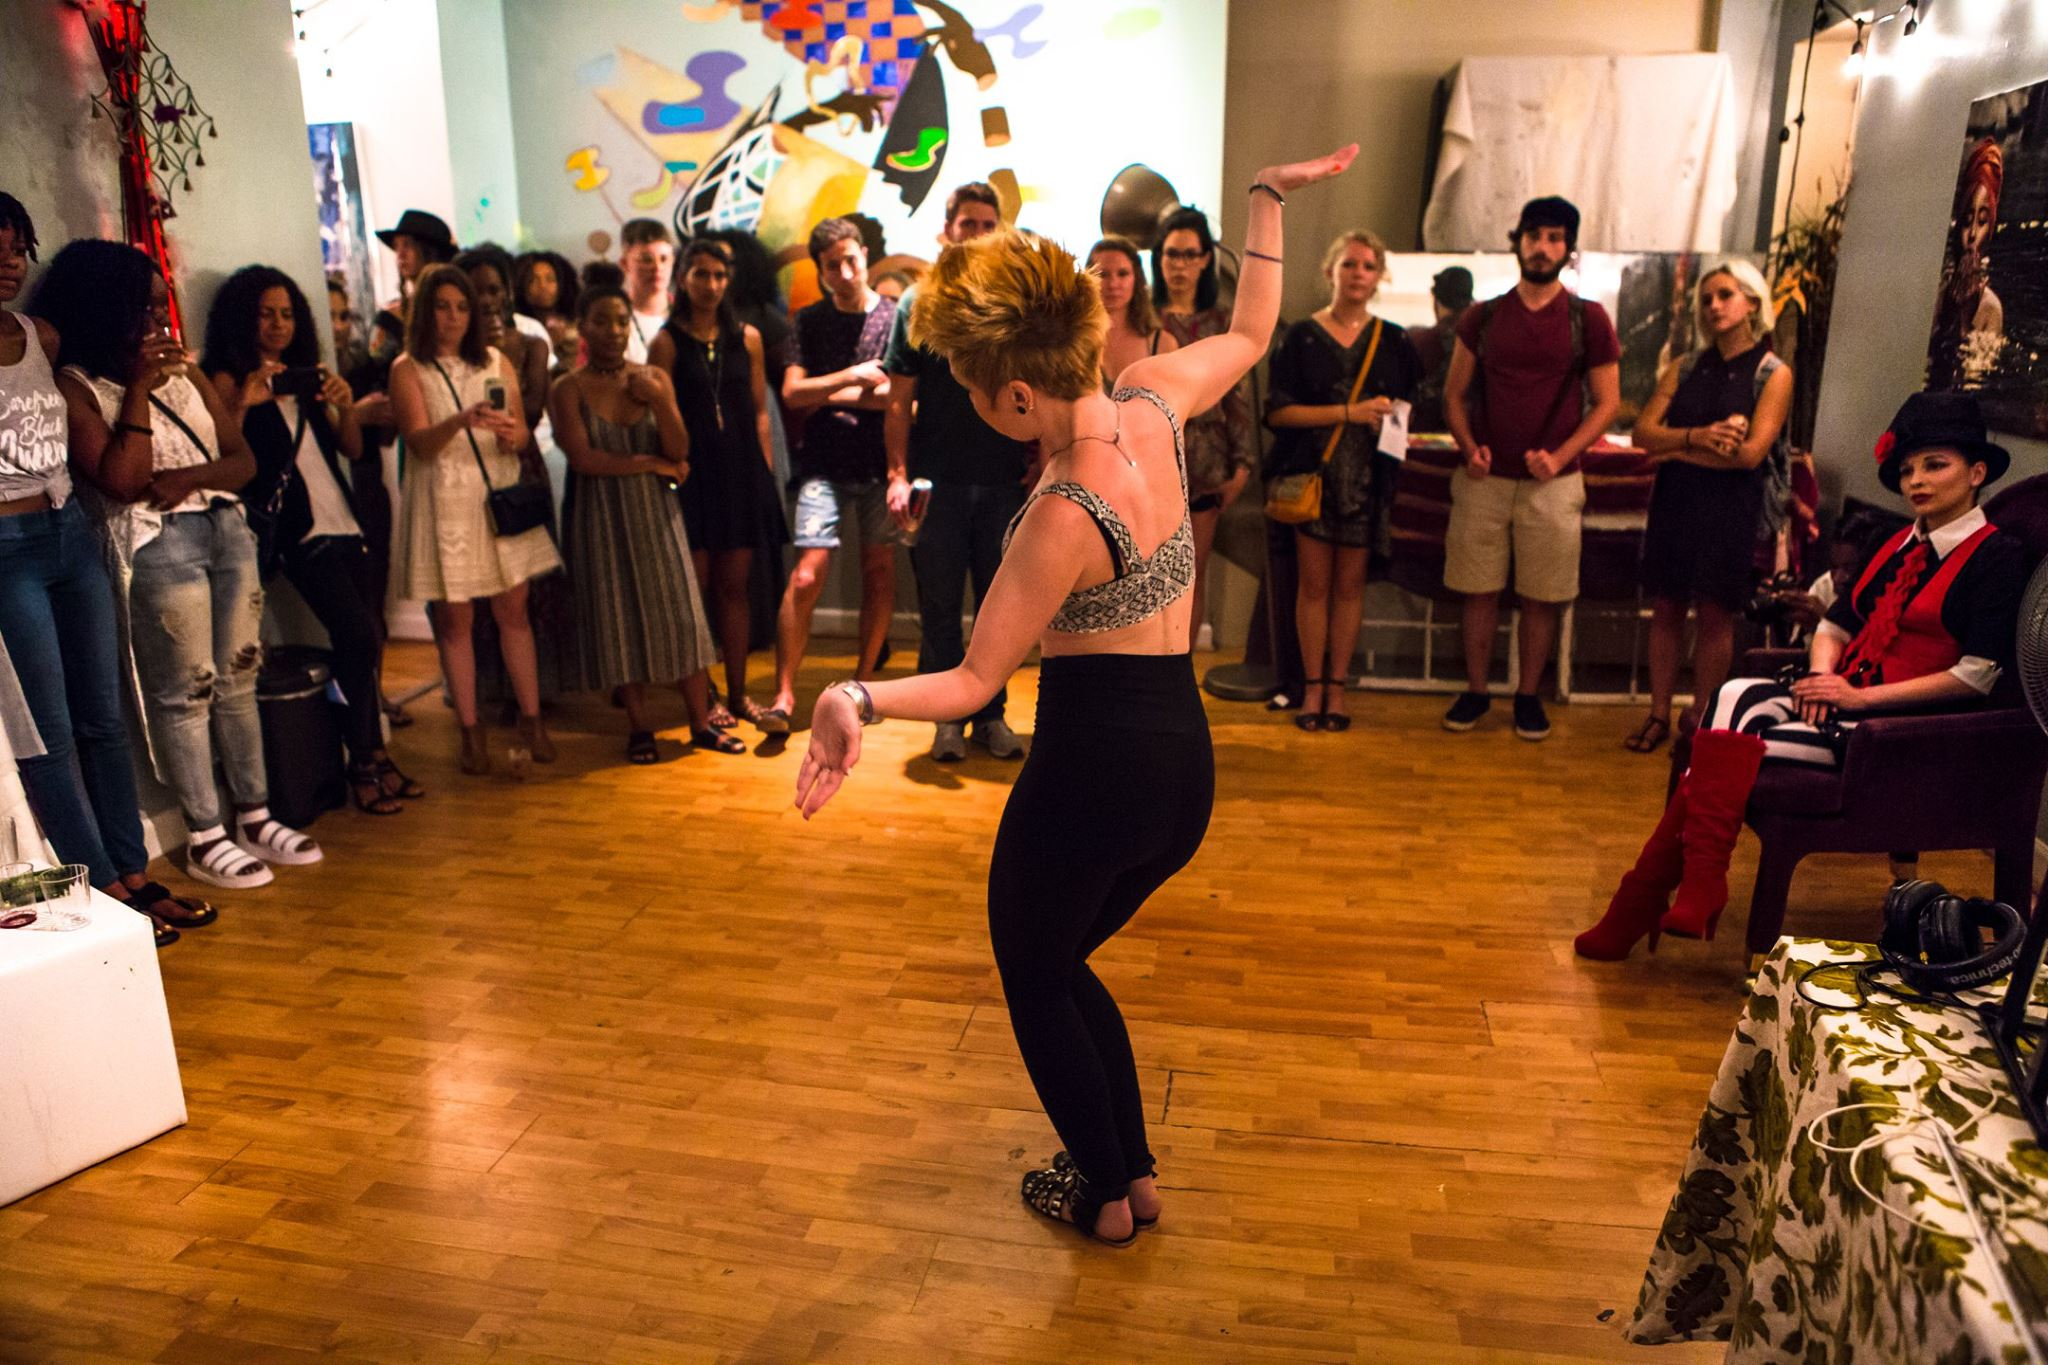 MUNDY, photo by @tonyhitchcock